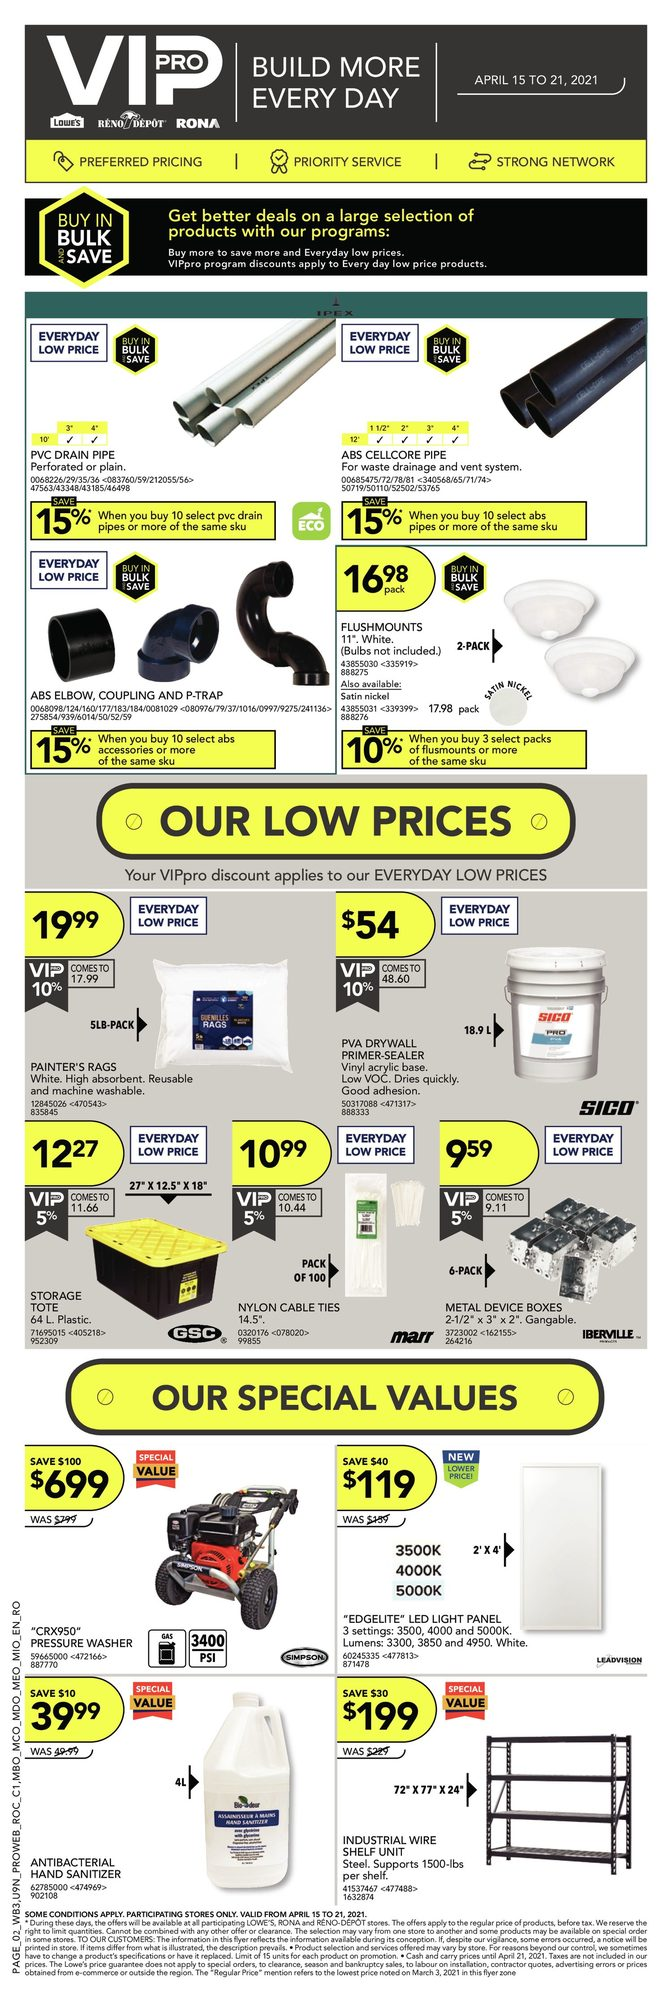 Rona - Weekly Flyer Specials - Page 12